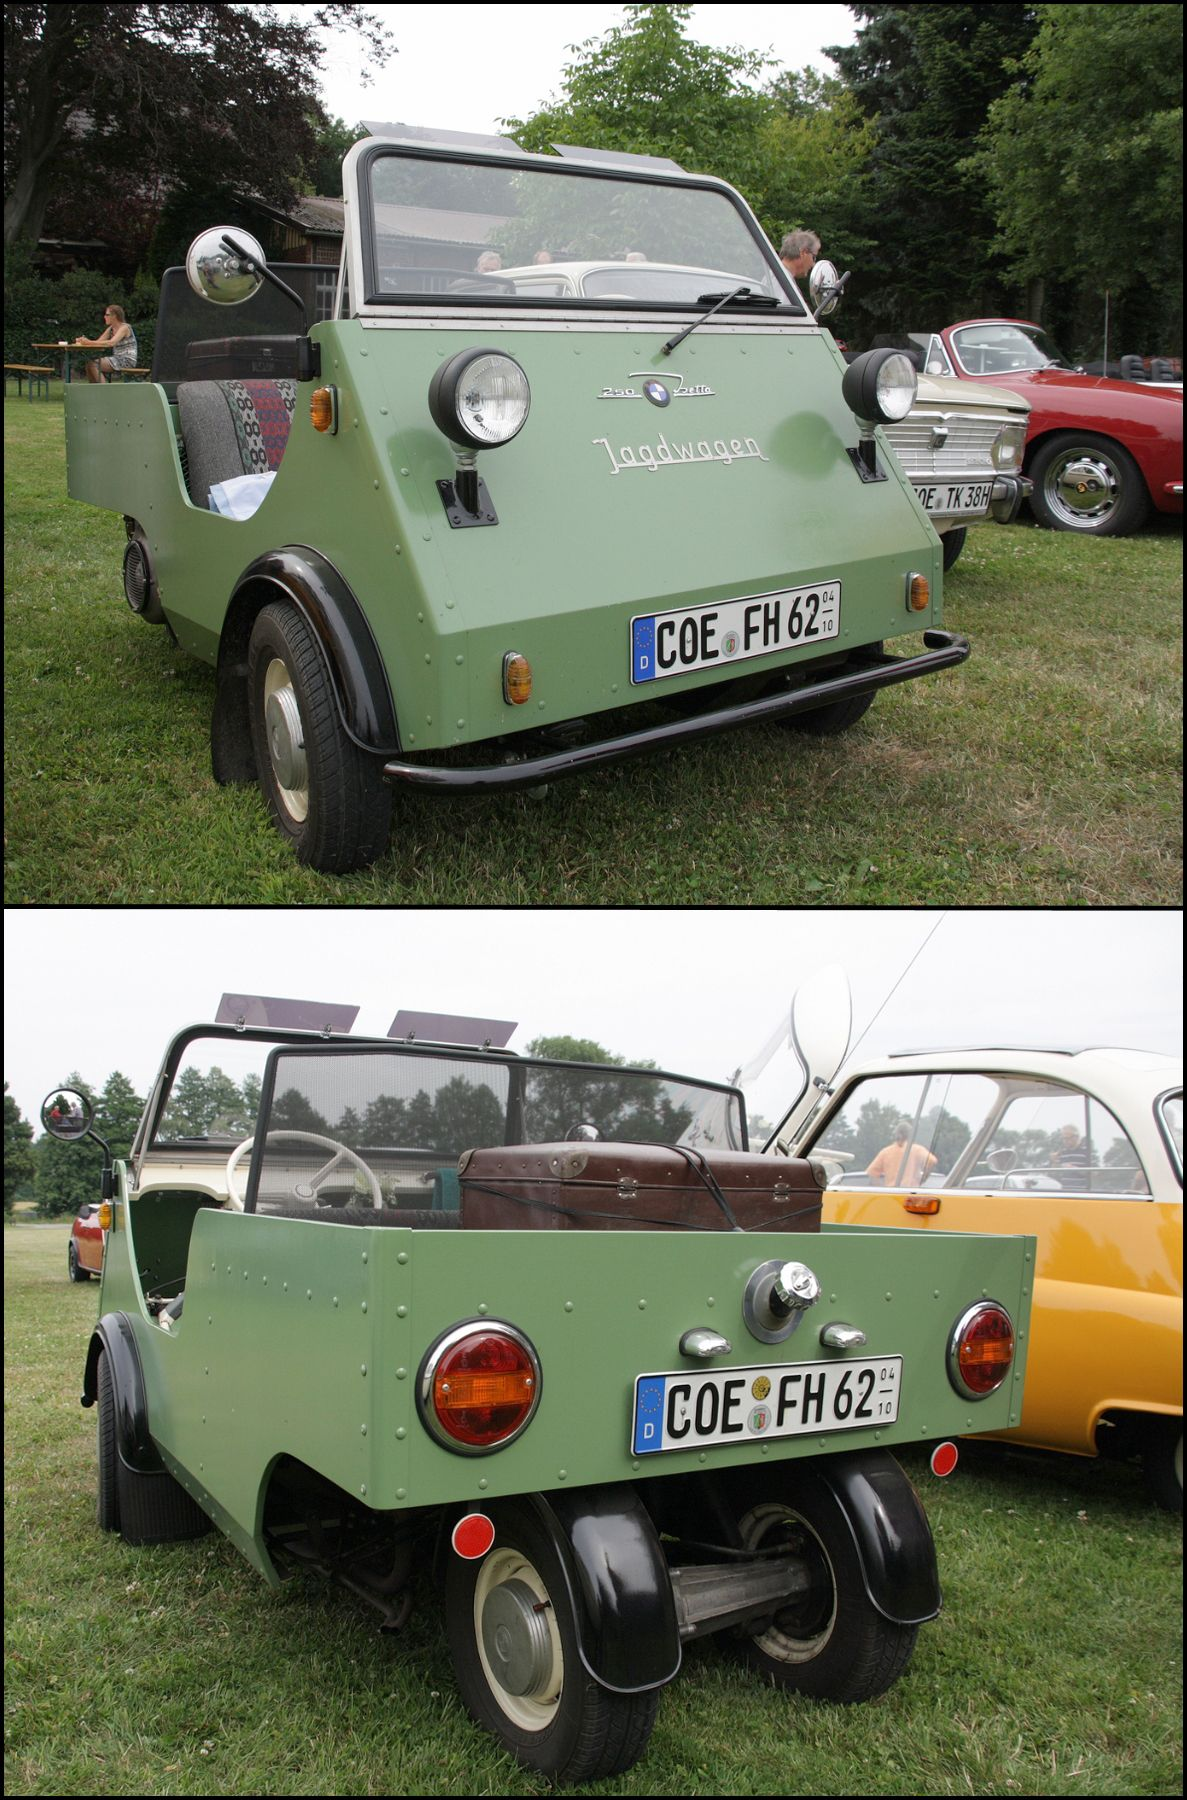 1955 BMW Isetta Jagdwagen (Hunting Car). A busy executive needs a ...